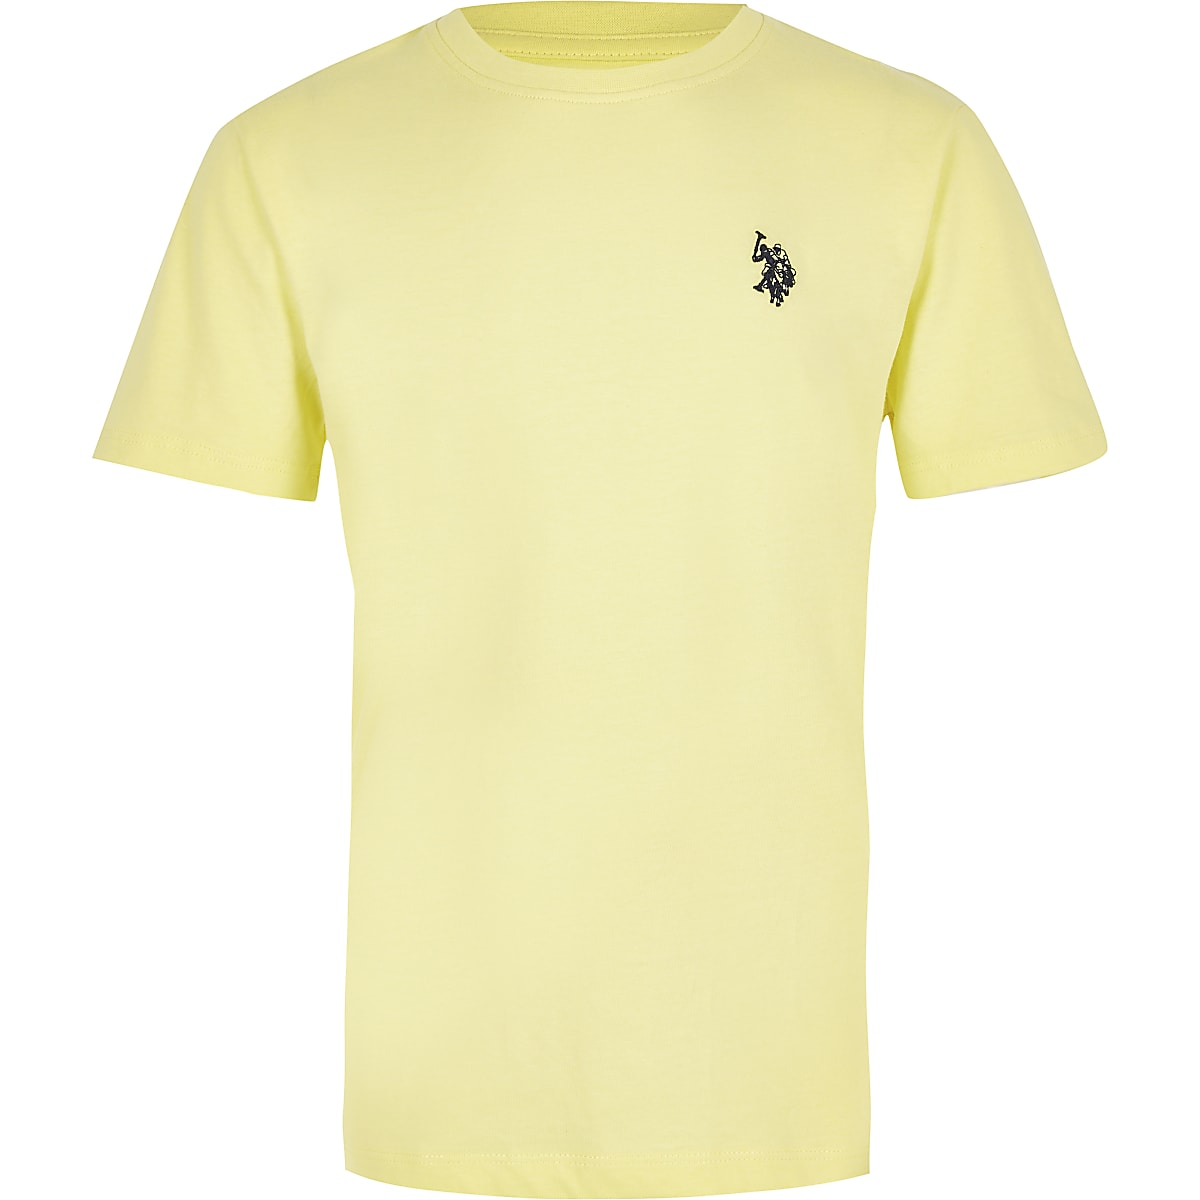 Boys yellow U.S. Polo Assn.T-shirt